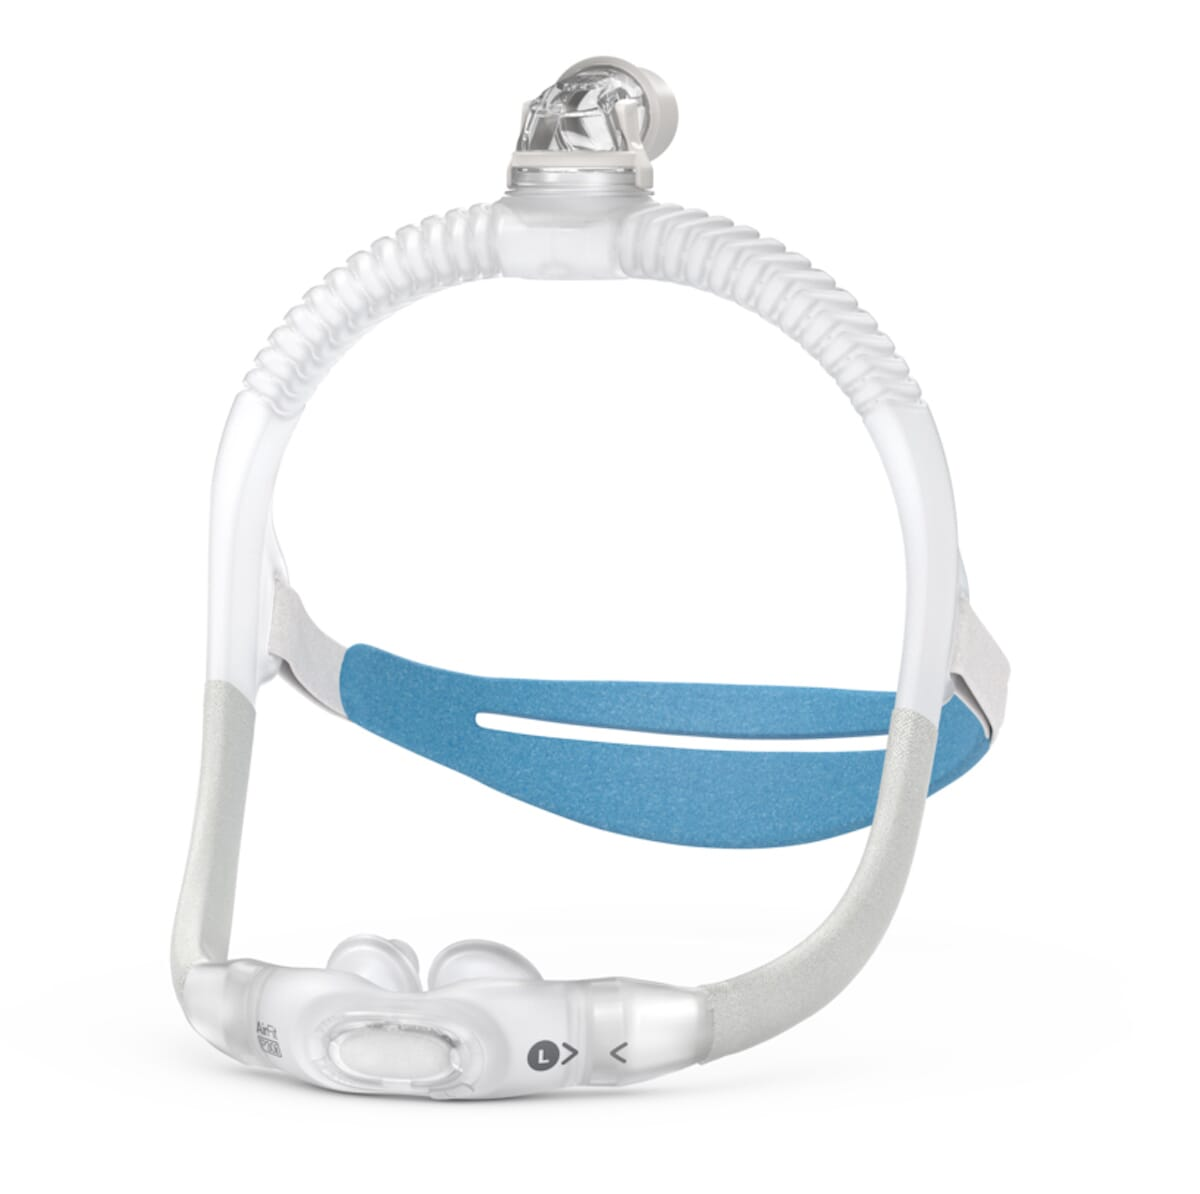 Resmed Airfit P30i Nasal Pillow Cpap Mask Review